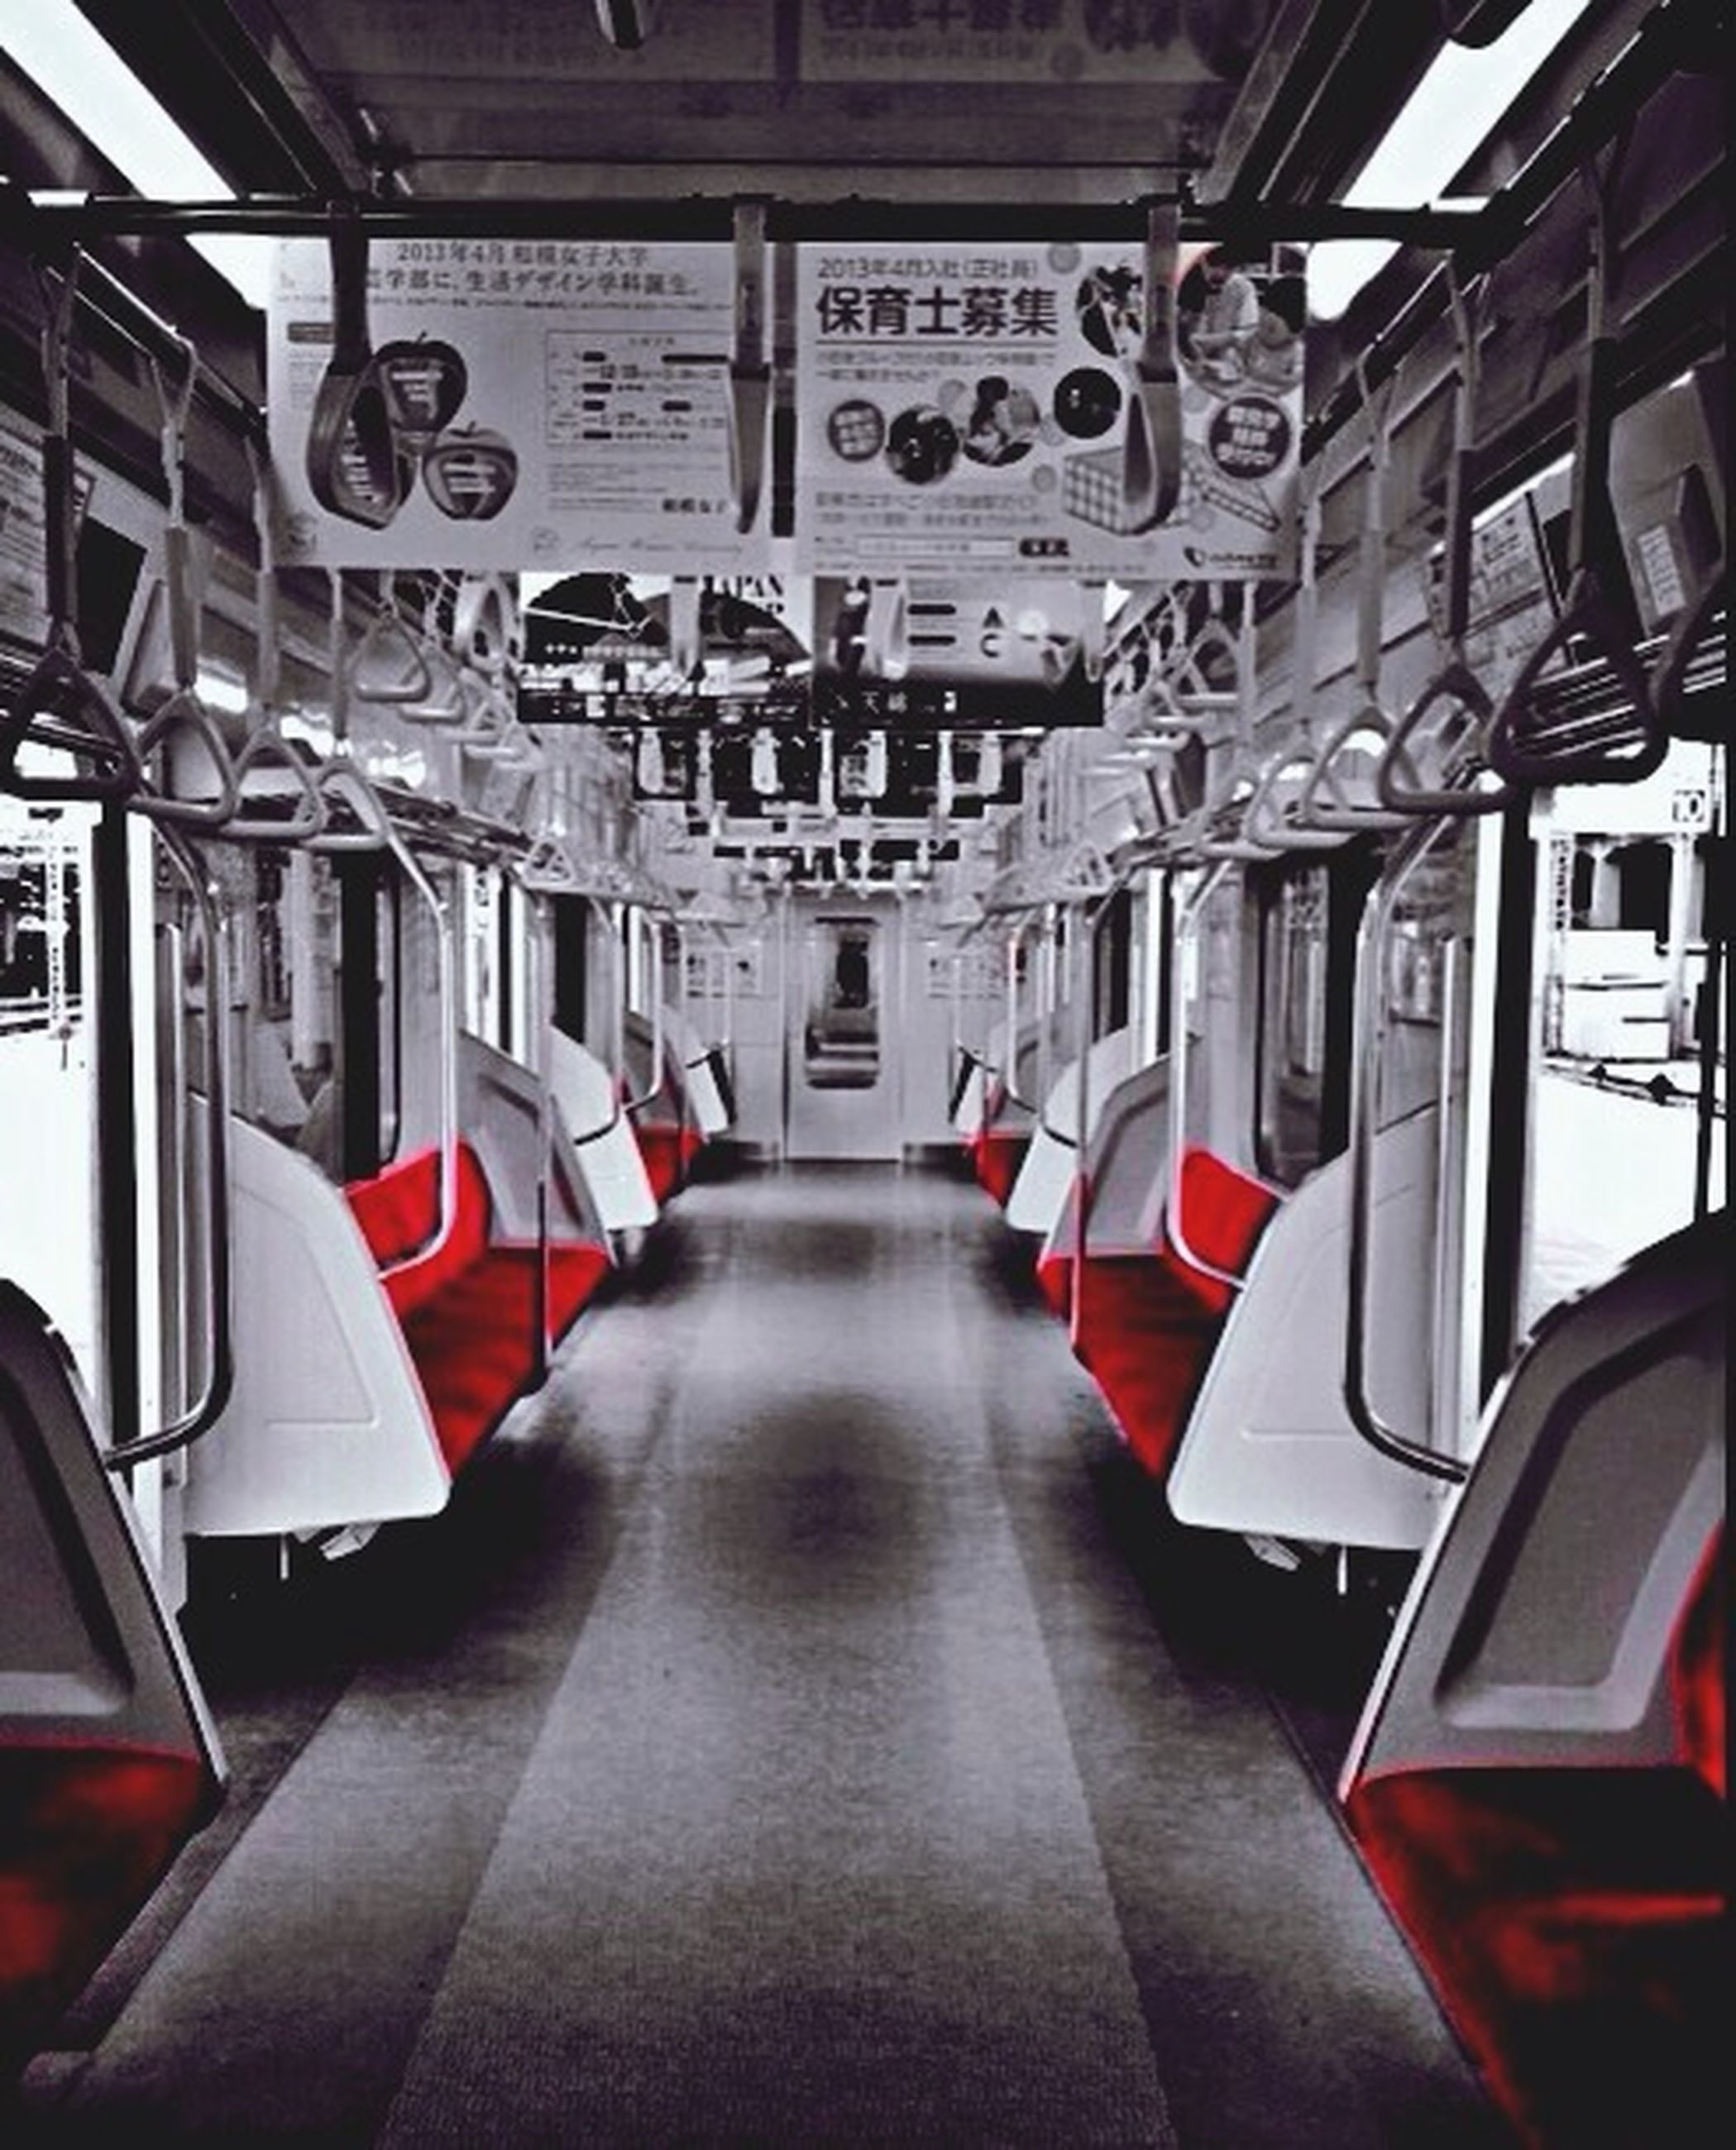 indoors, transportation, mode of transport, public transportation, red, absence, in a row, empty, architecture, built structure, vehicle interior, travel, window, no people, communication, day, bus, interior, vehicle seat, modern